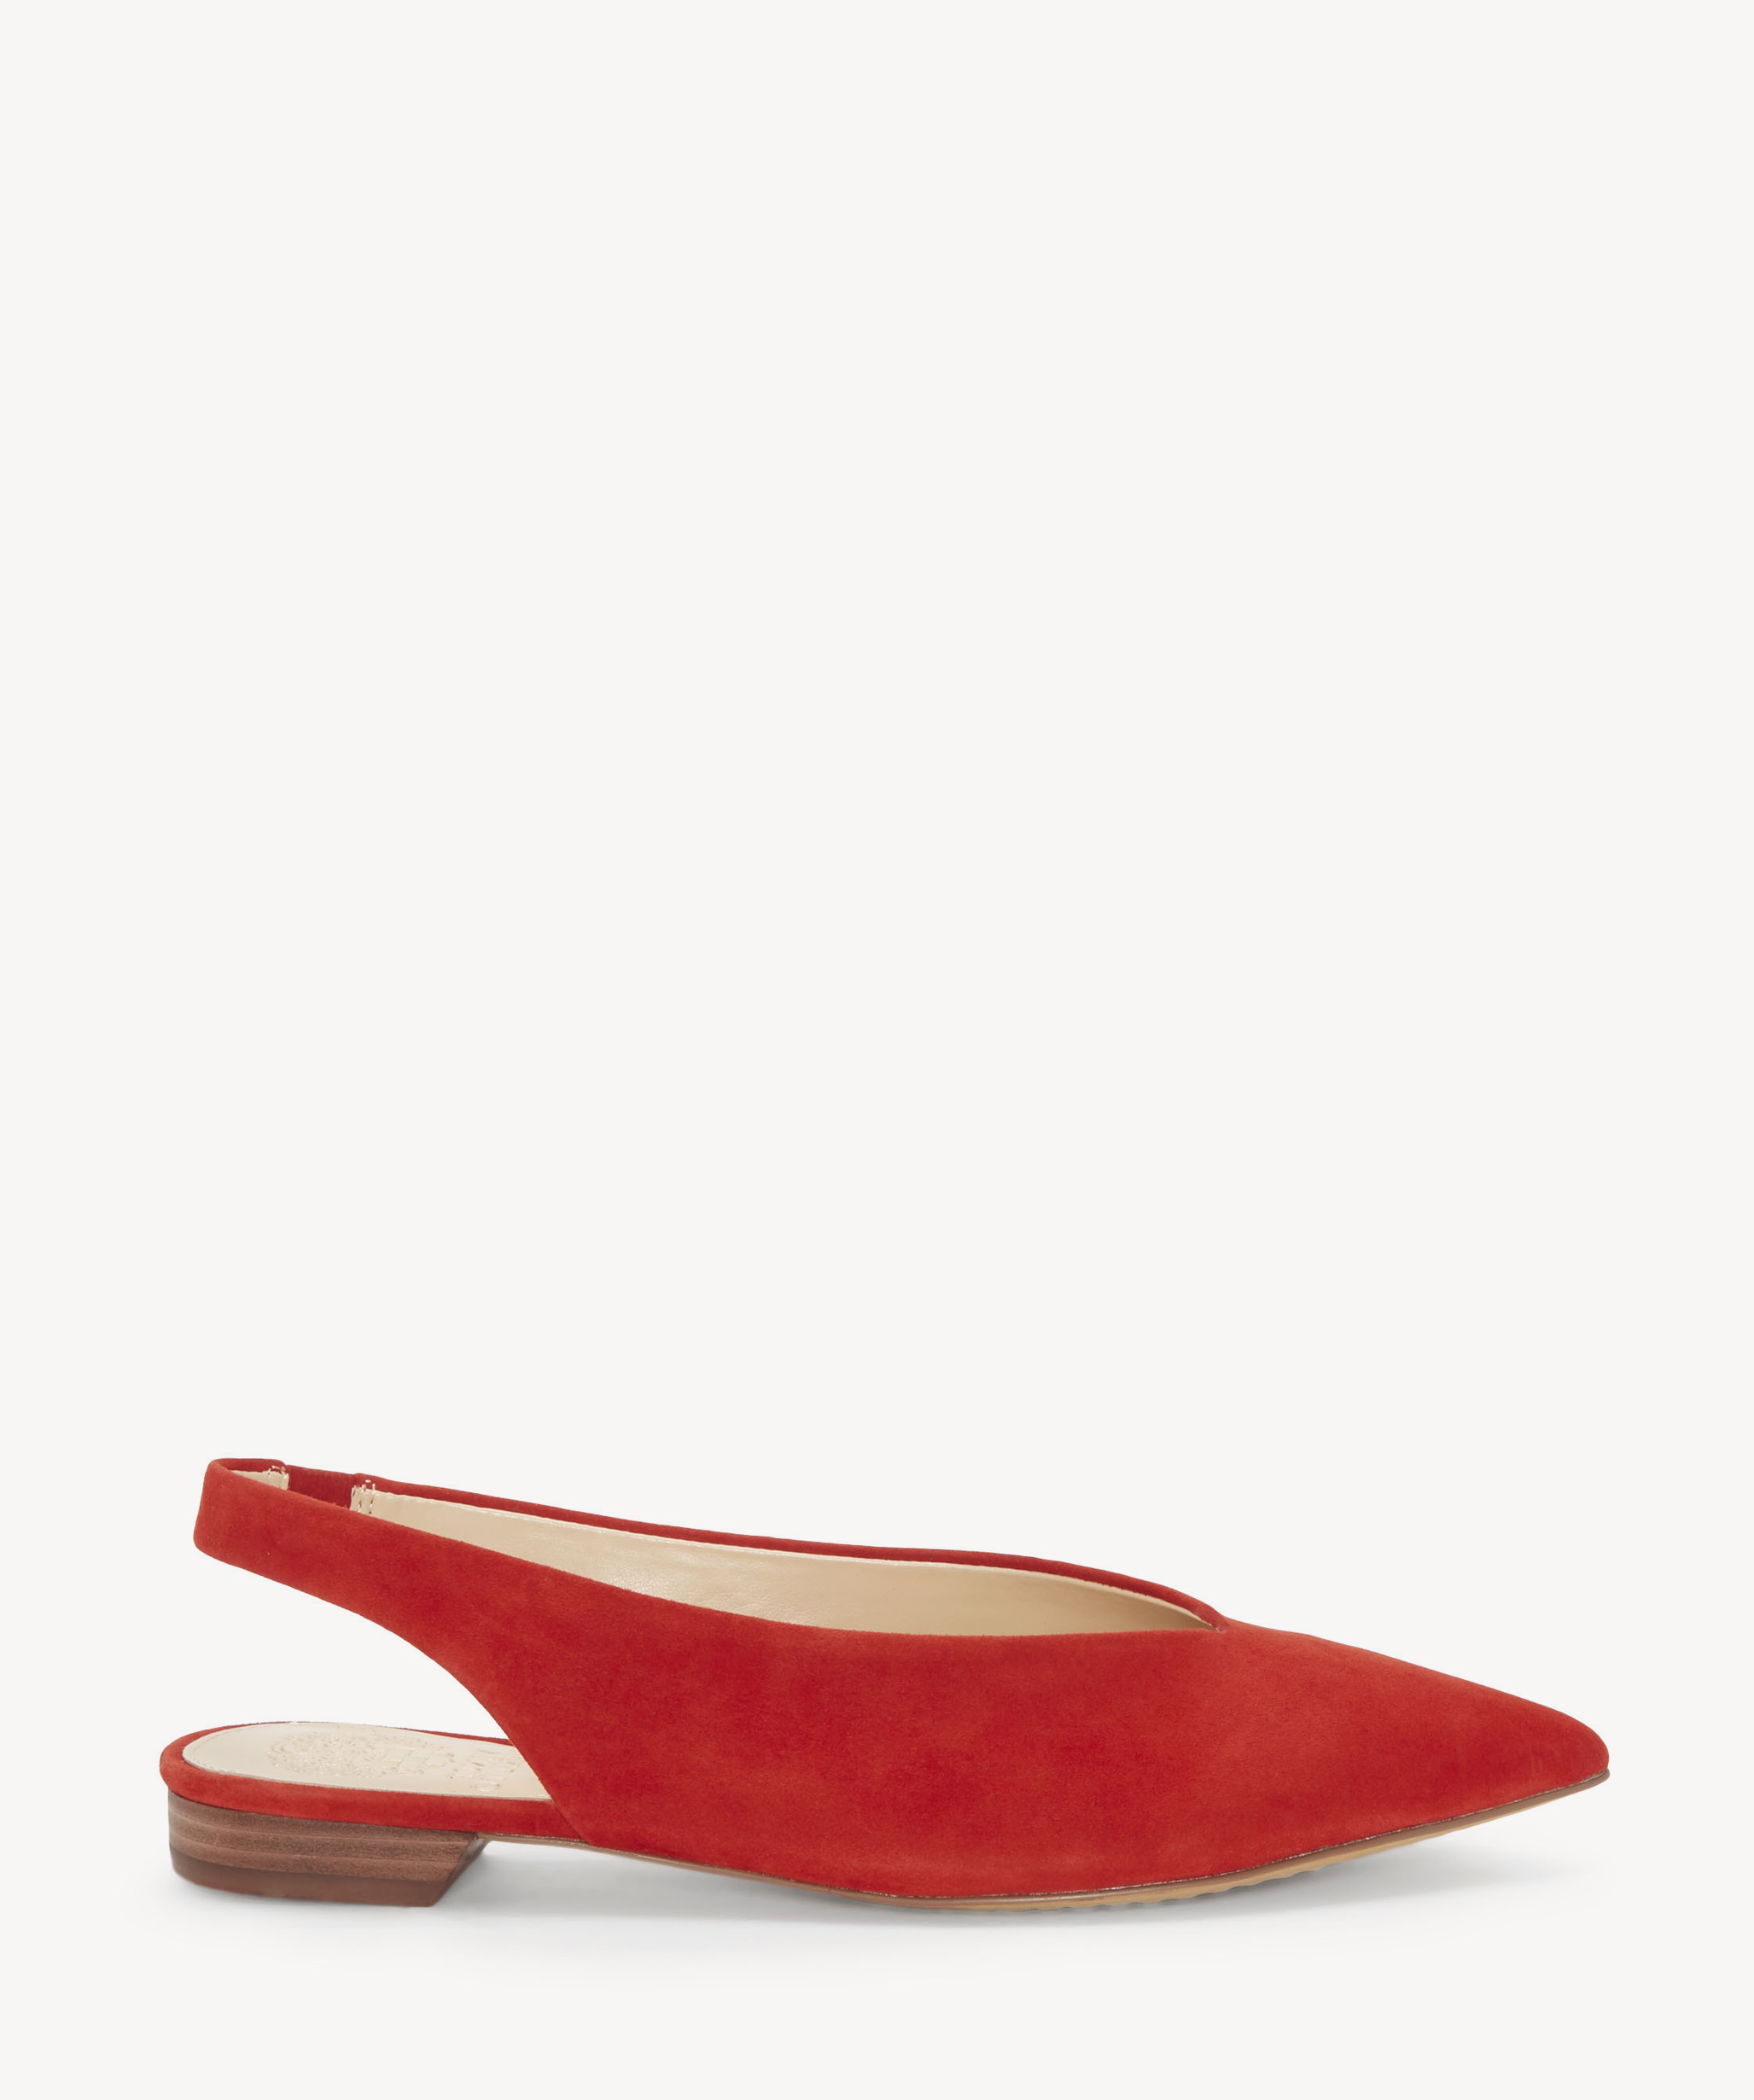 d761f033fff1 Vince Camuto Women s Maltida Slingback Flats In Color  Red Hot Rio